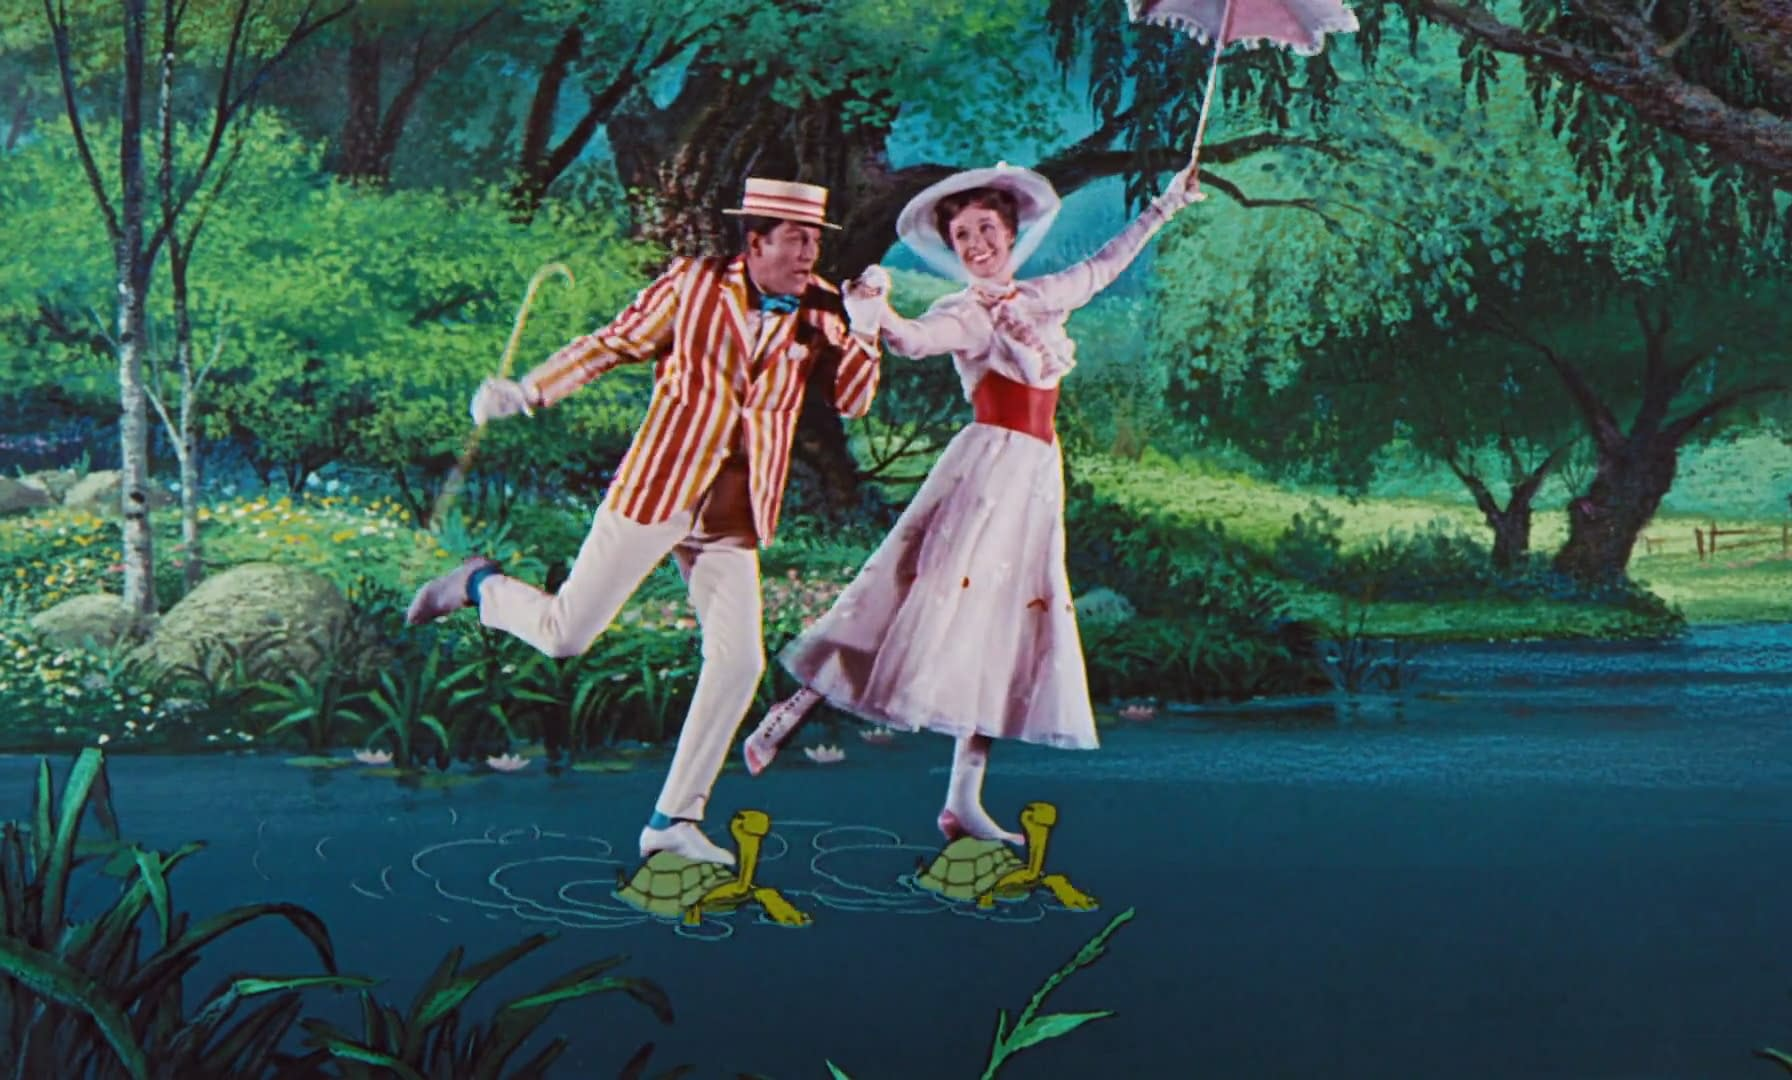 'Mary Poppins' is the Greatest Movie Musical of All Time and This is the Hill I'm Willing to Die On